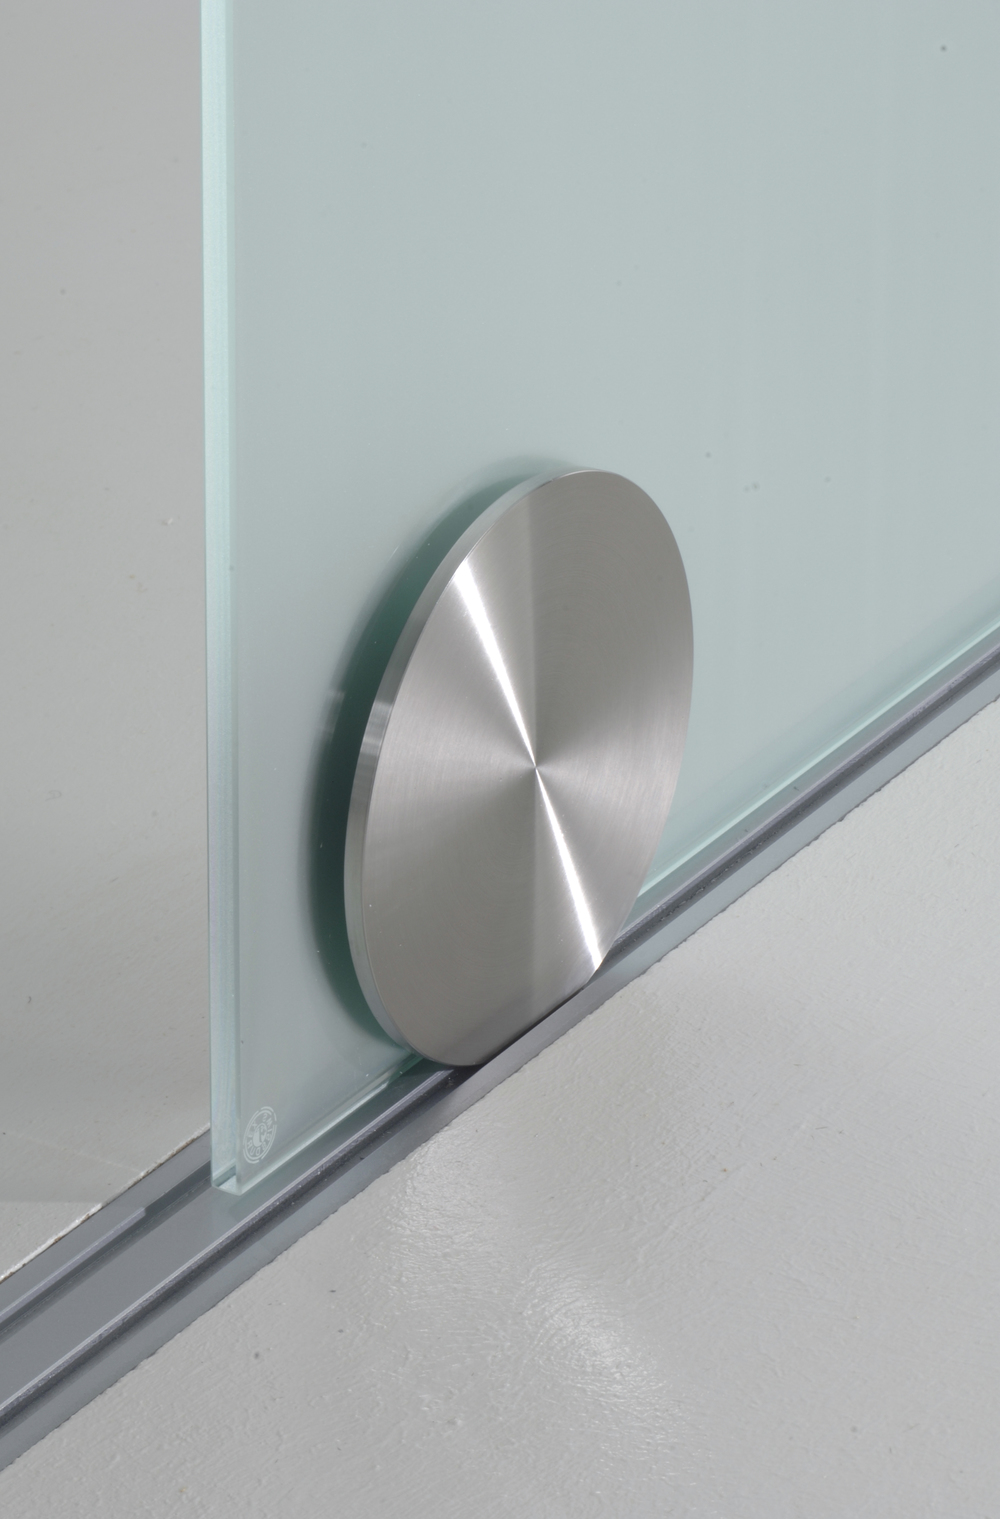 astec 400 sliding door hardware